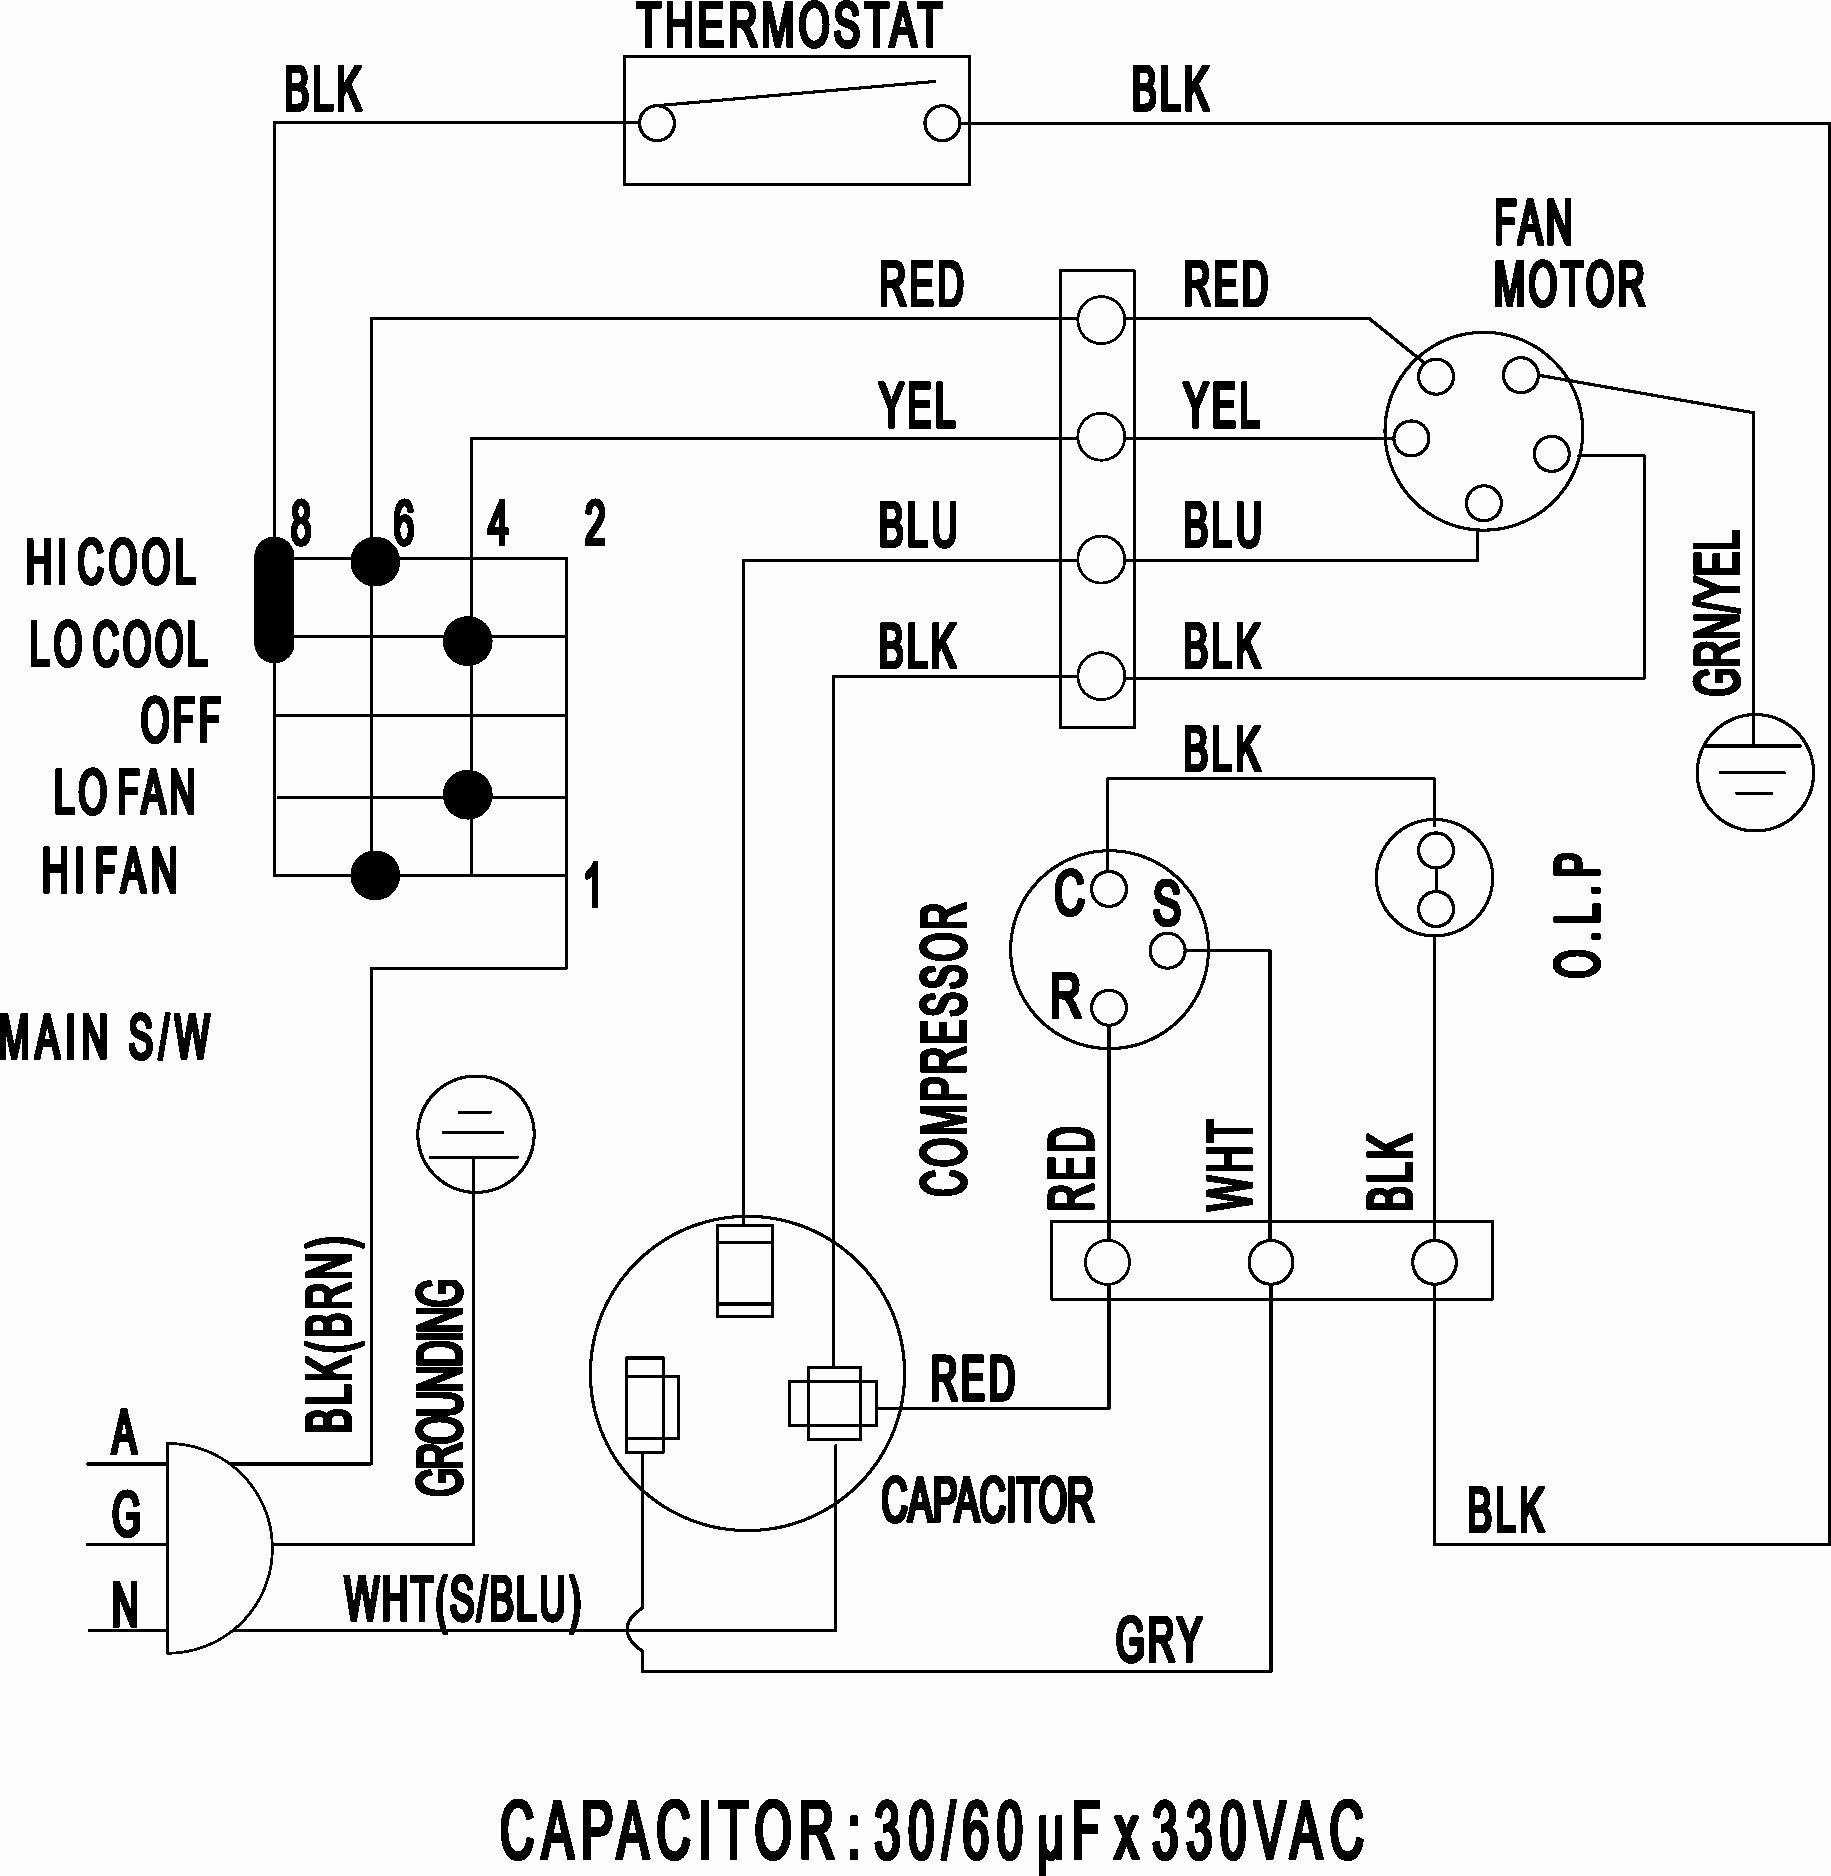 Coleman Mach Rv Air Conditioner Wiring Diagram